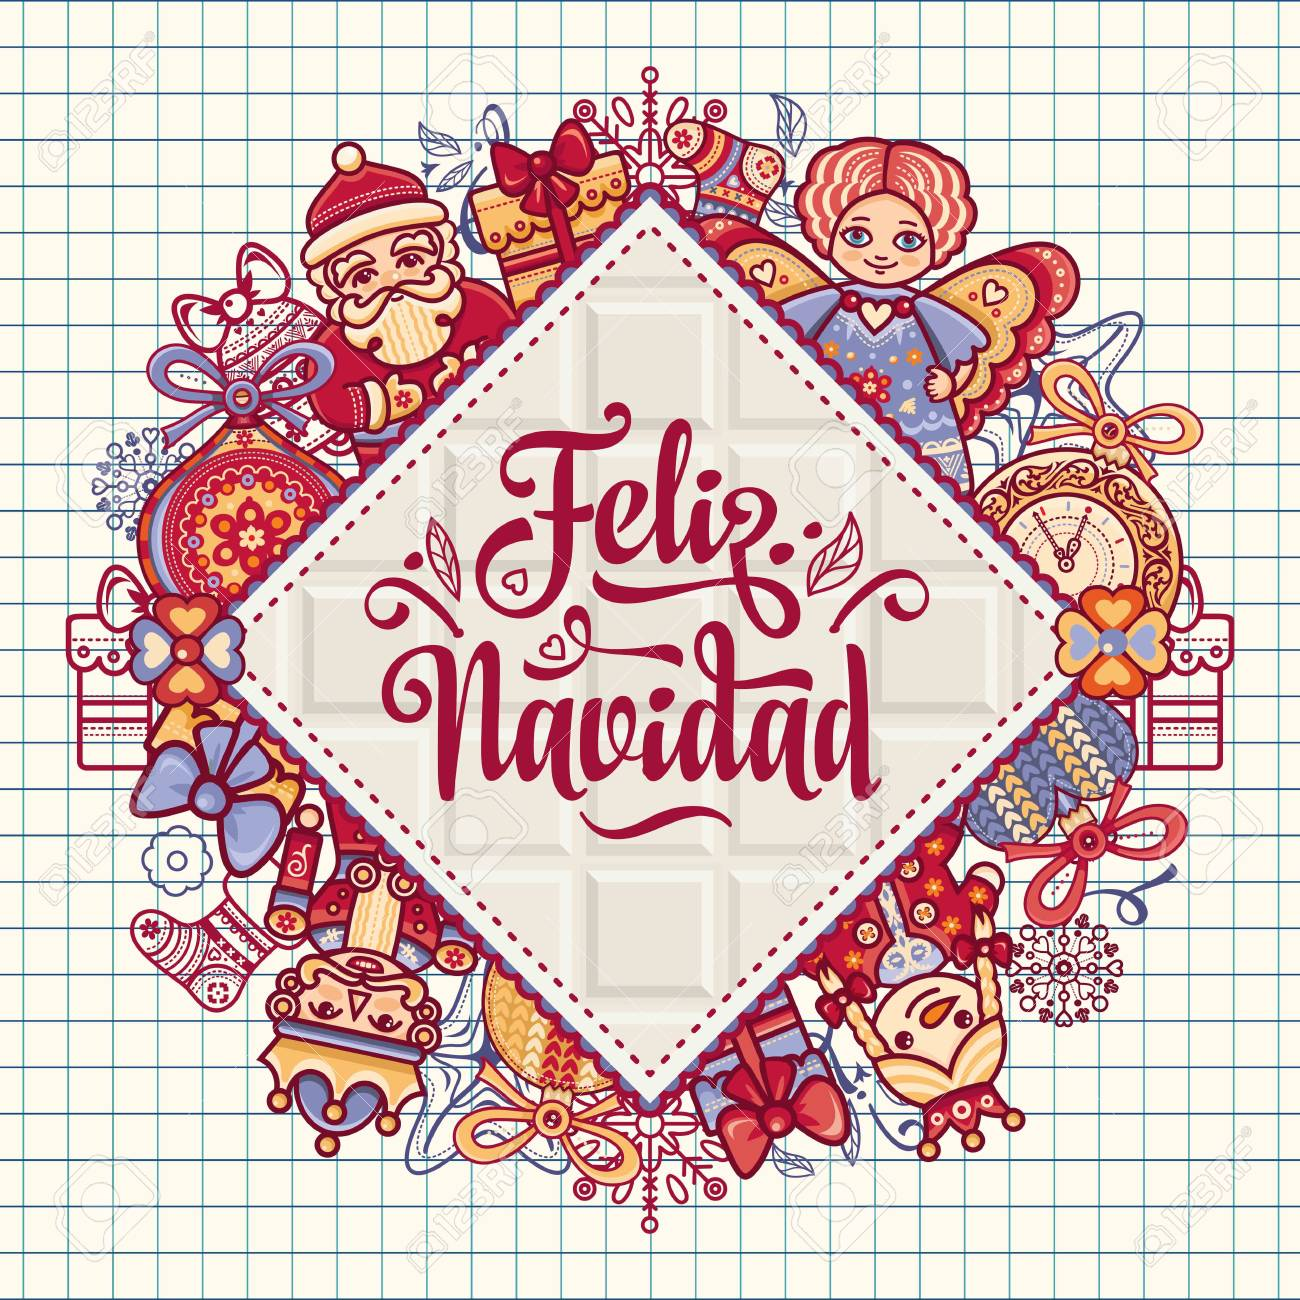 Christmas decorations for invitations and greeting cards in spanish christmas decorations for invitations and greeting cards in spanish stock vector 73021192 m4hsunfo